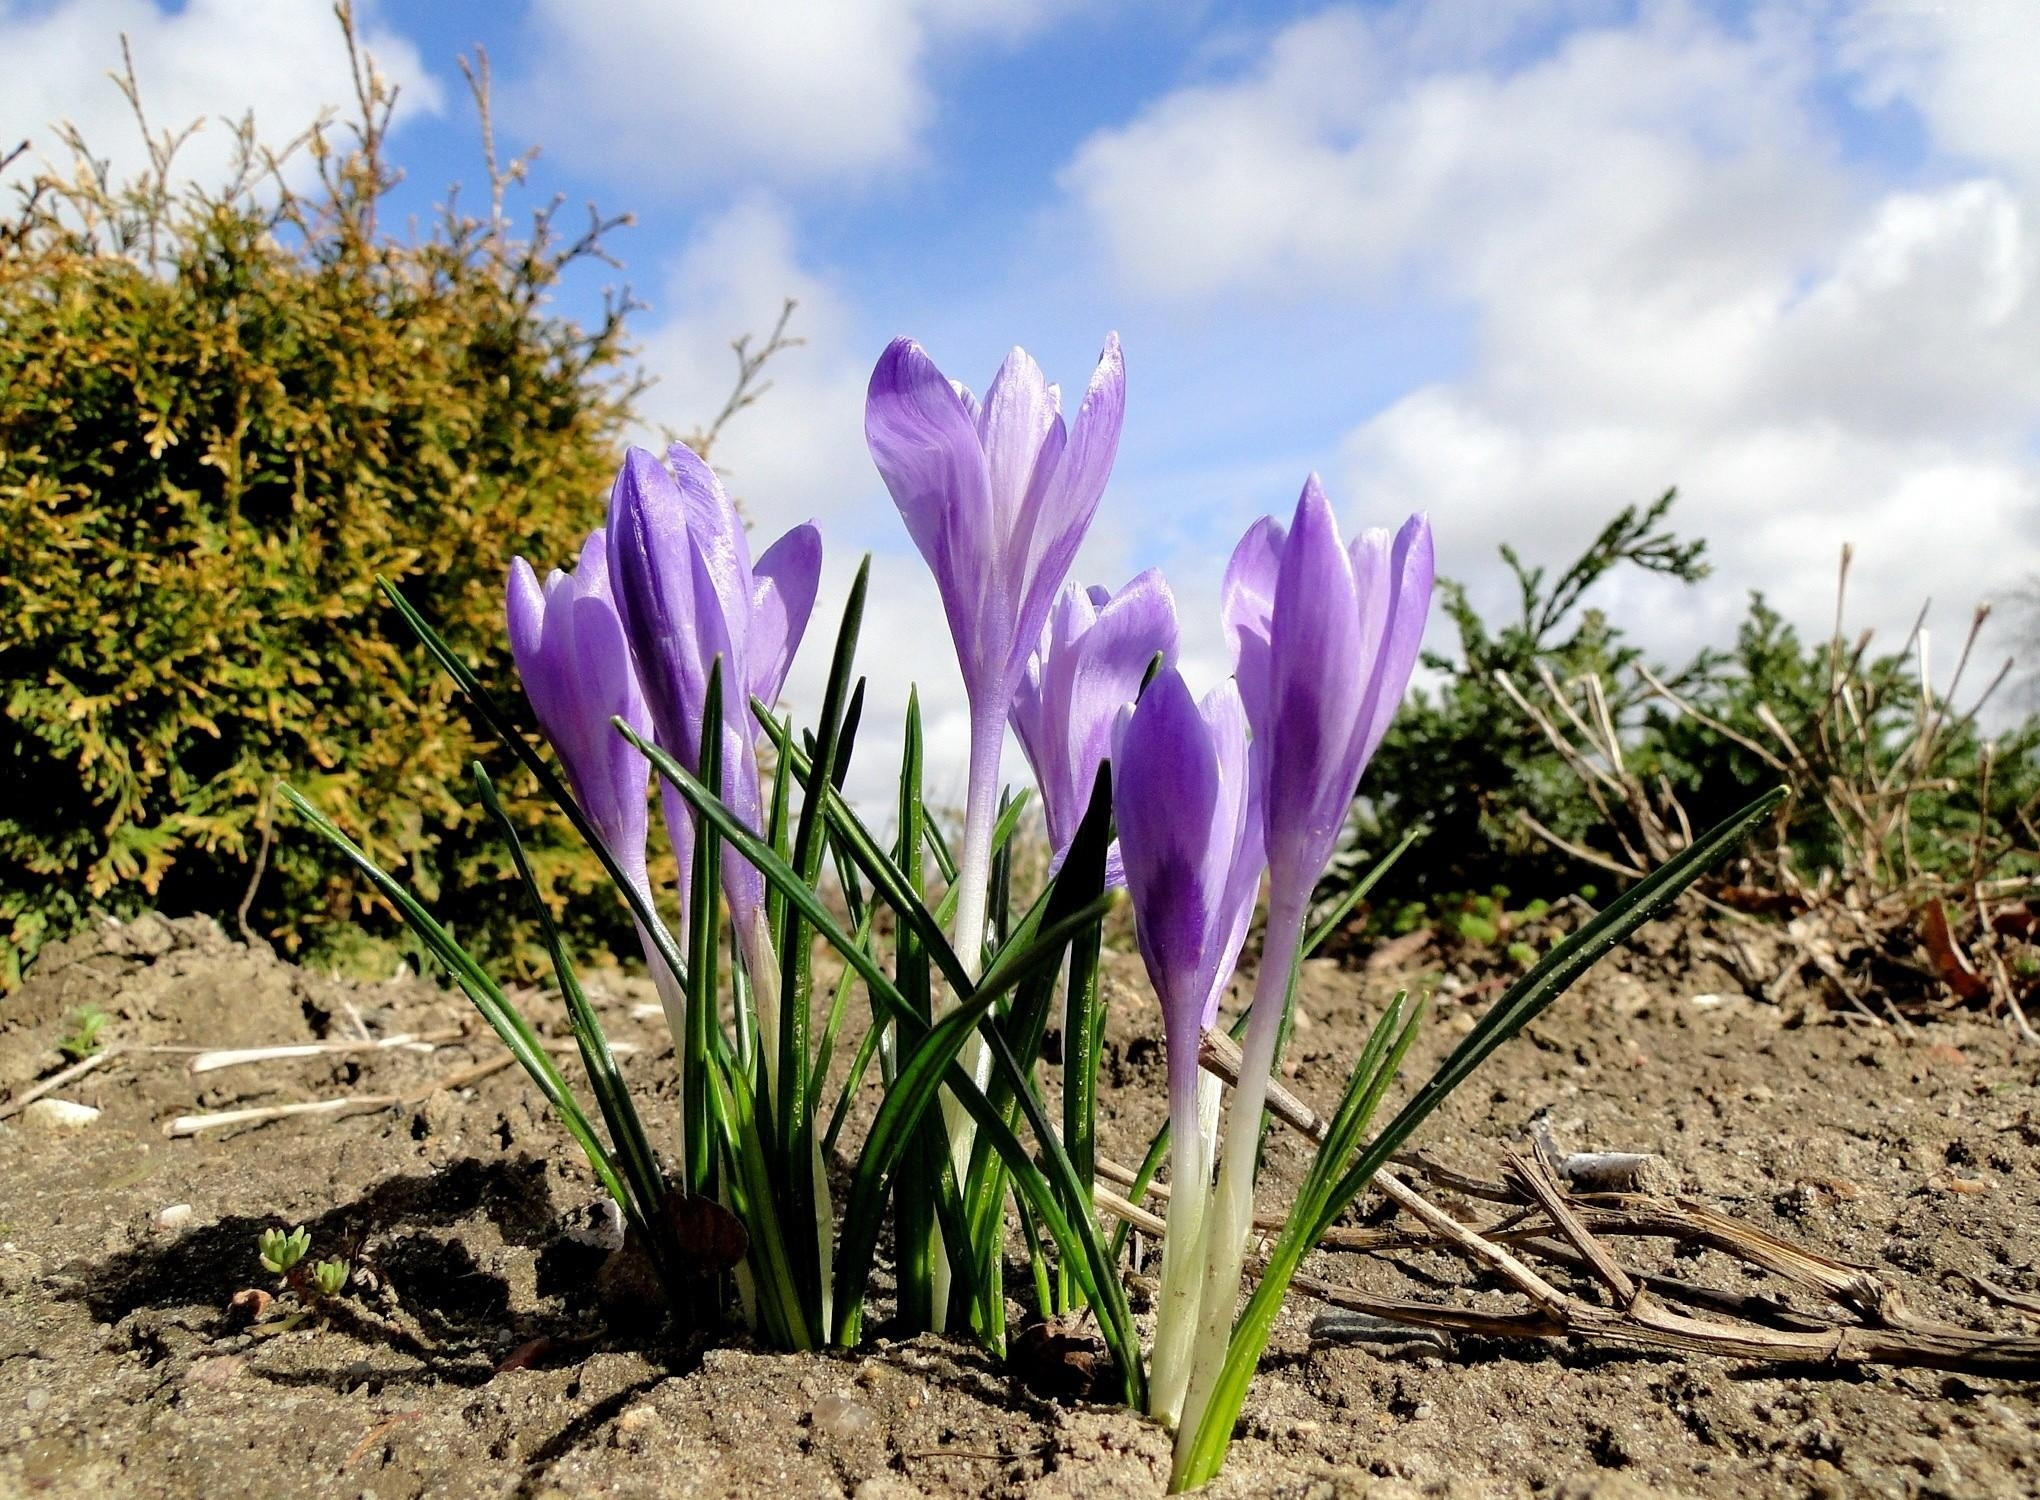 143217 download wallpaper Flowers, Crocuses, Spring, Priming, Ground, Sky, Clouds screensavers and pictures for free